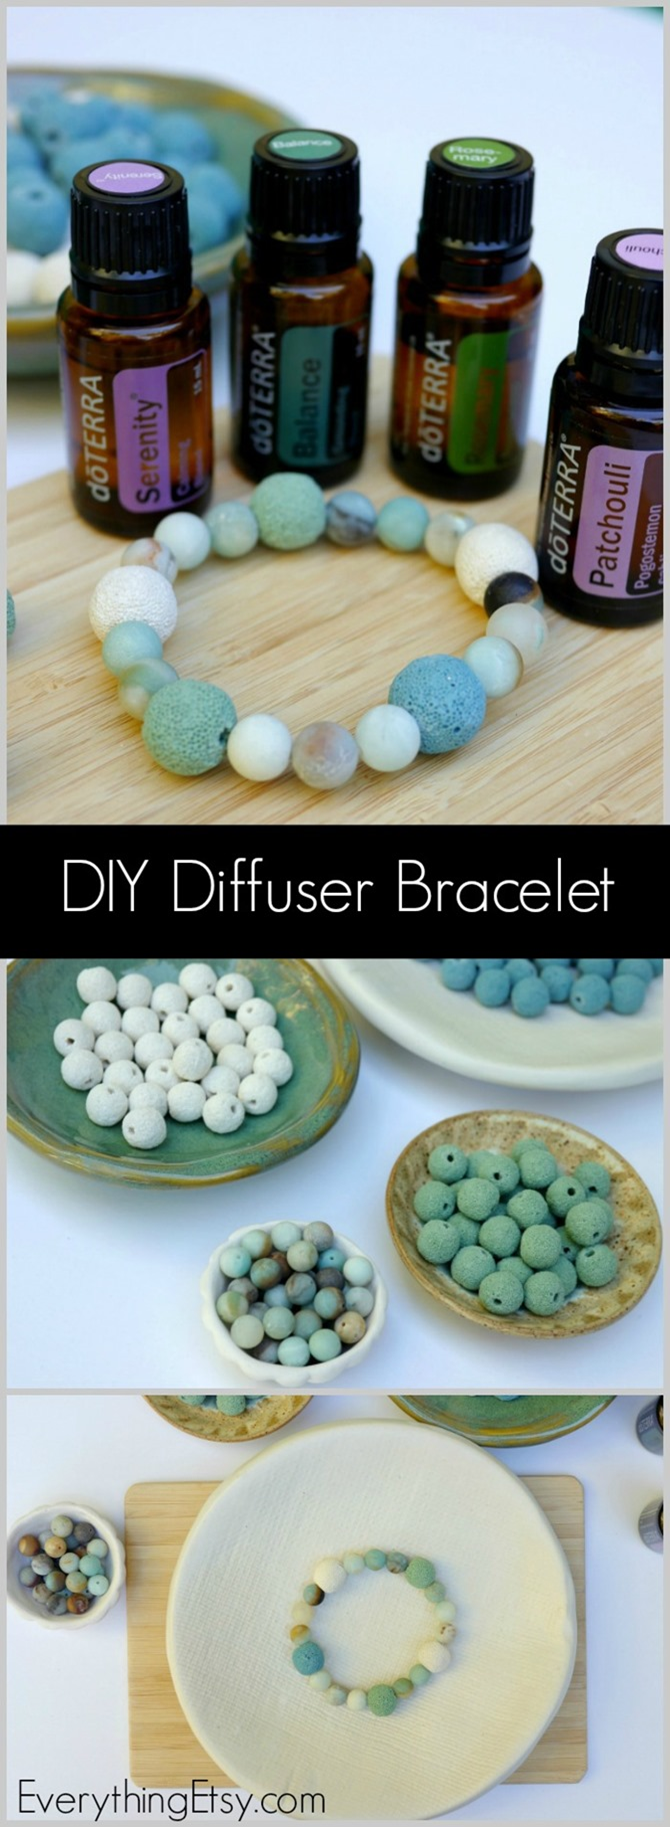 DIY Diffuser Bracelet - Tutorial and resources on EverythingEtsy